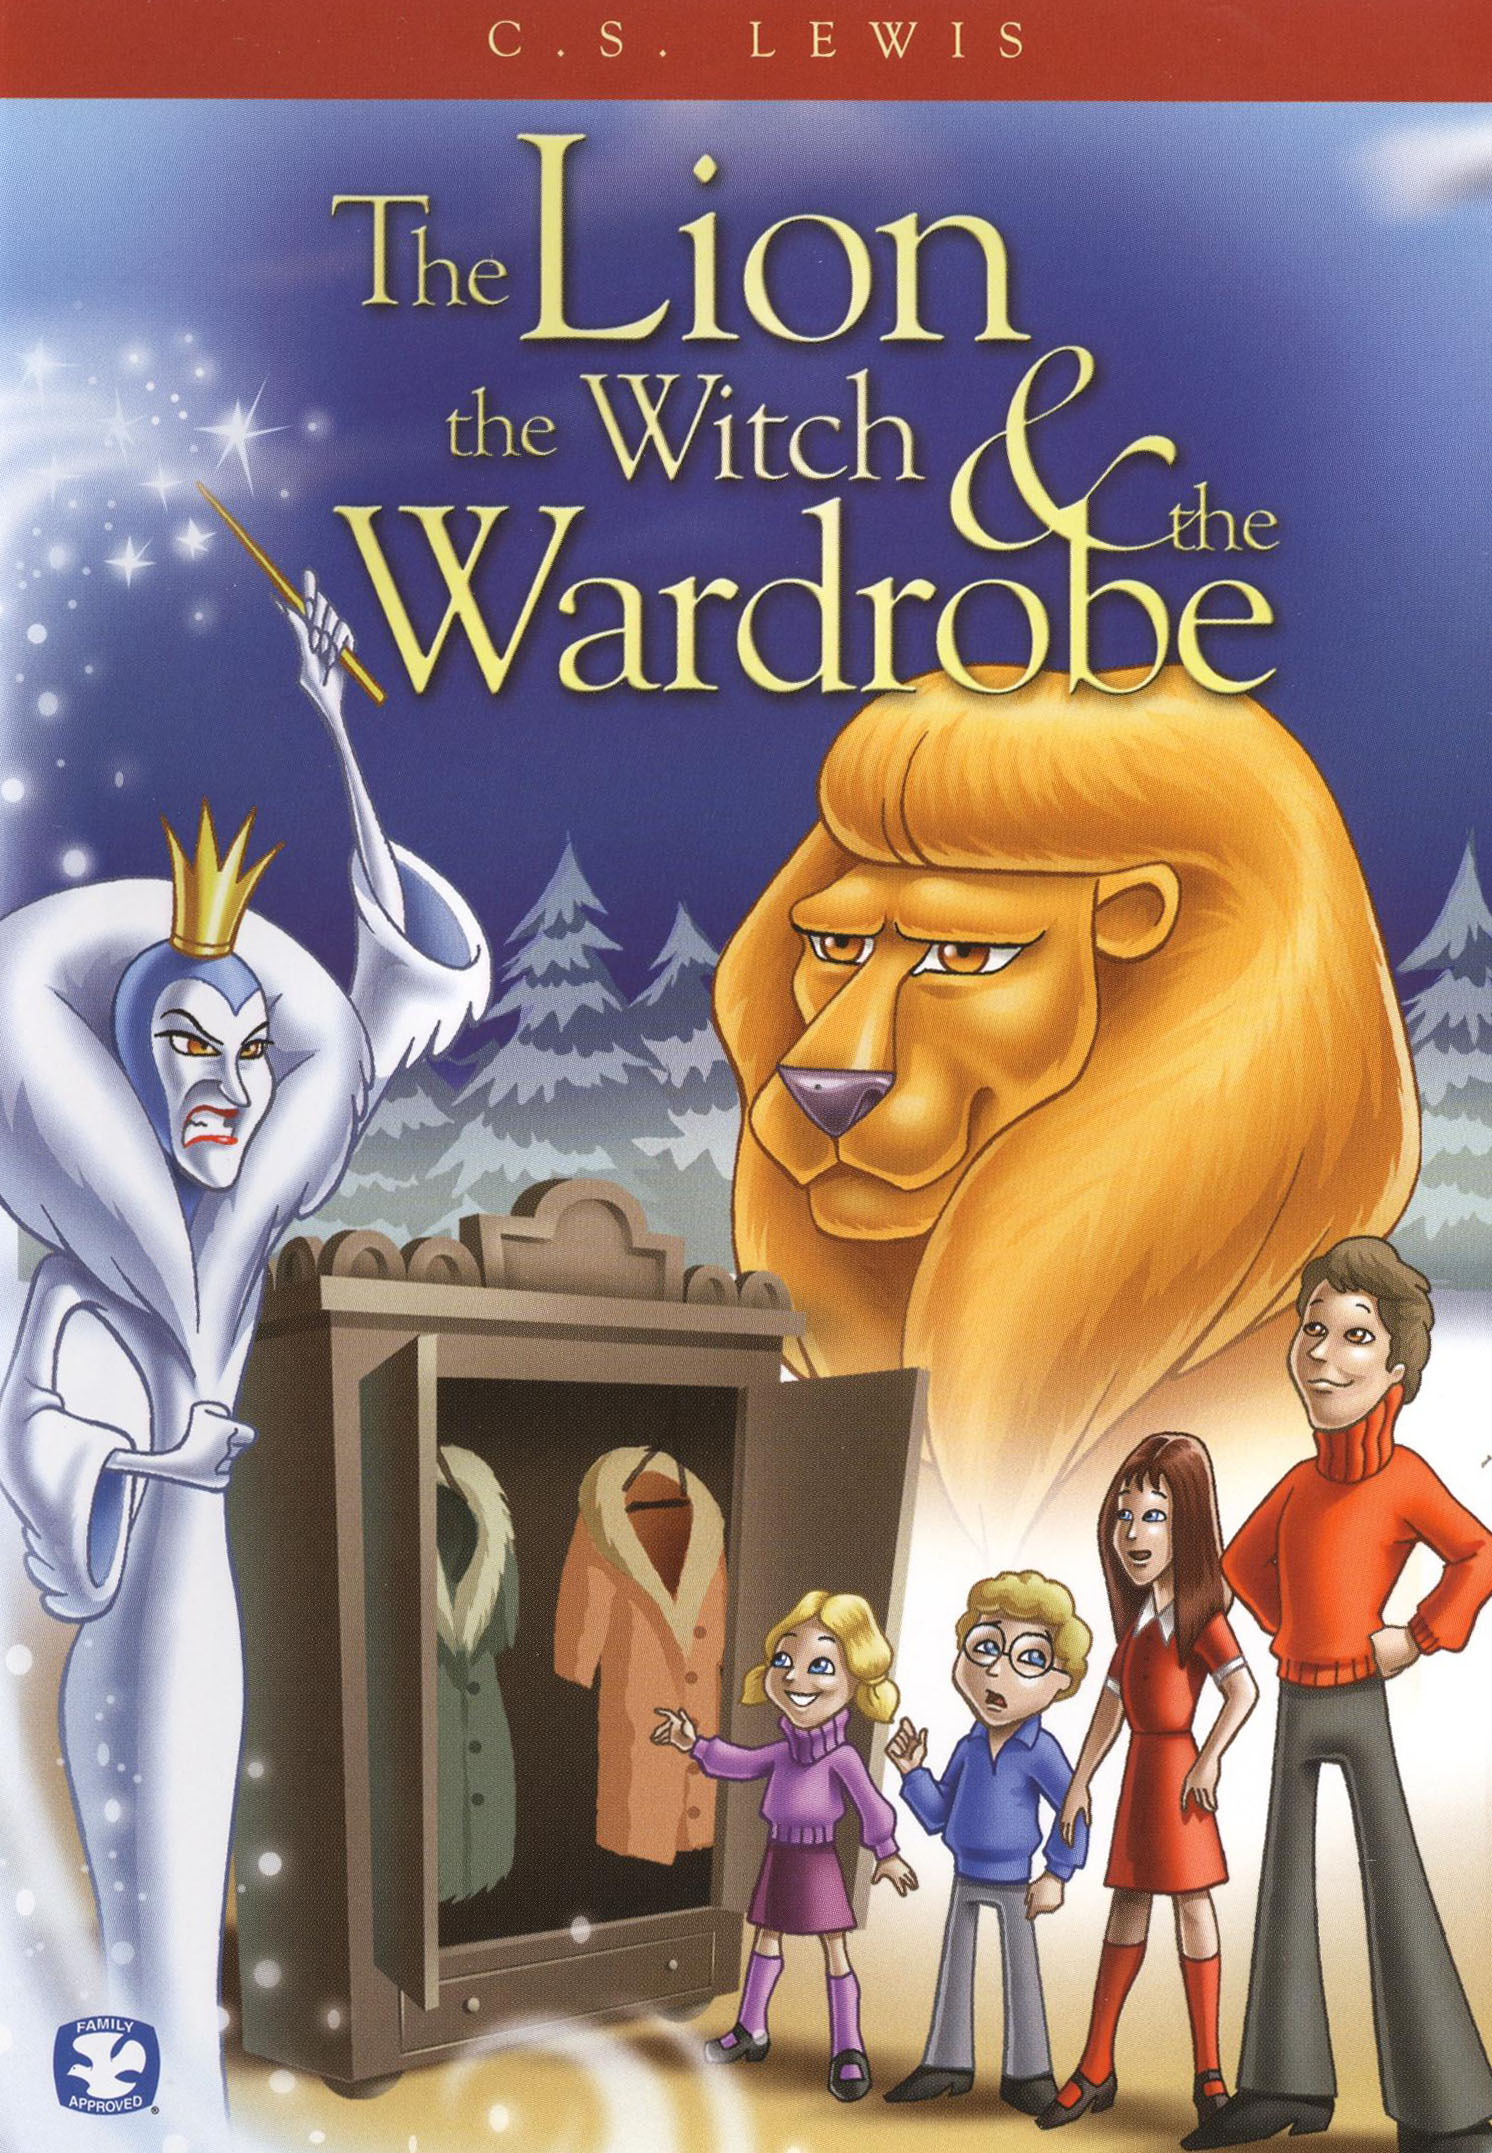 argumentative essay on the lion the witch and the wardrobe